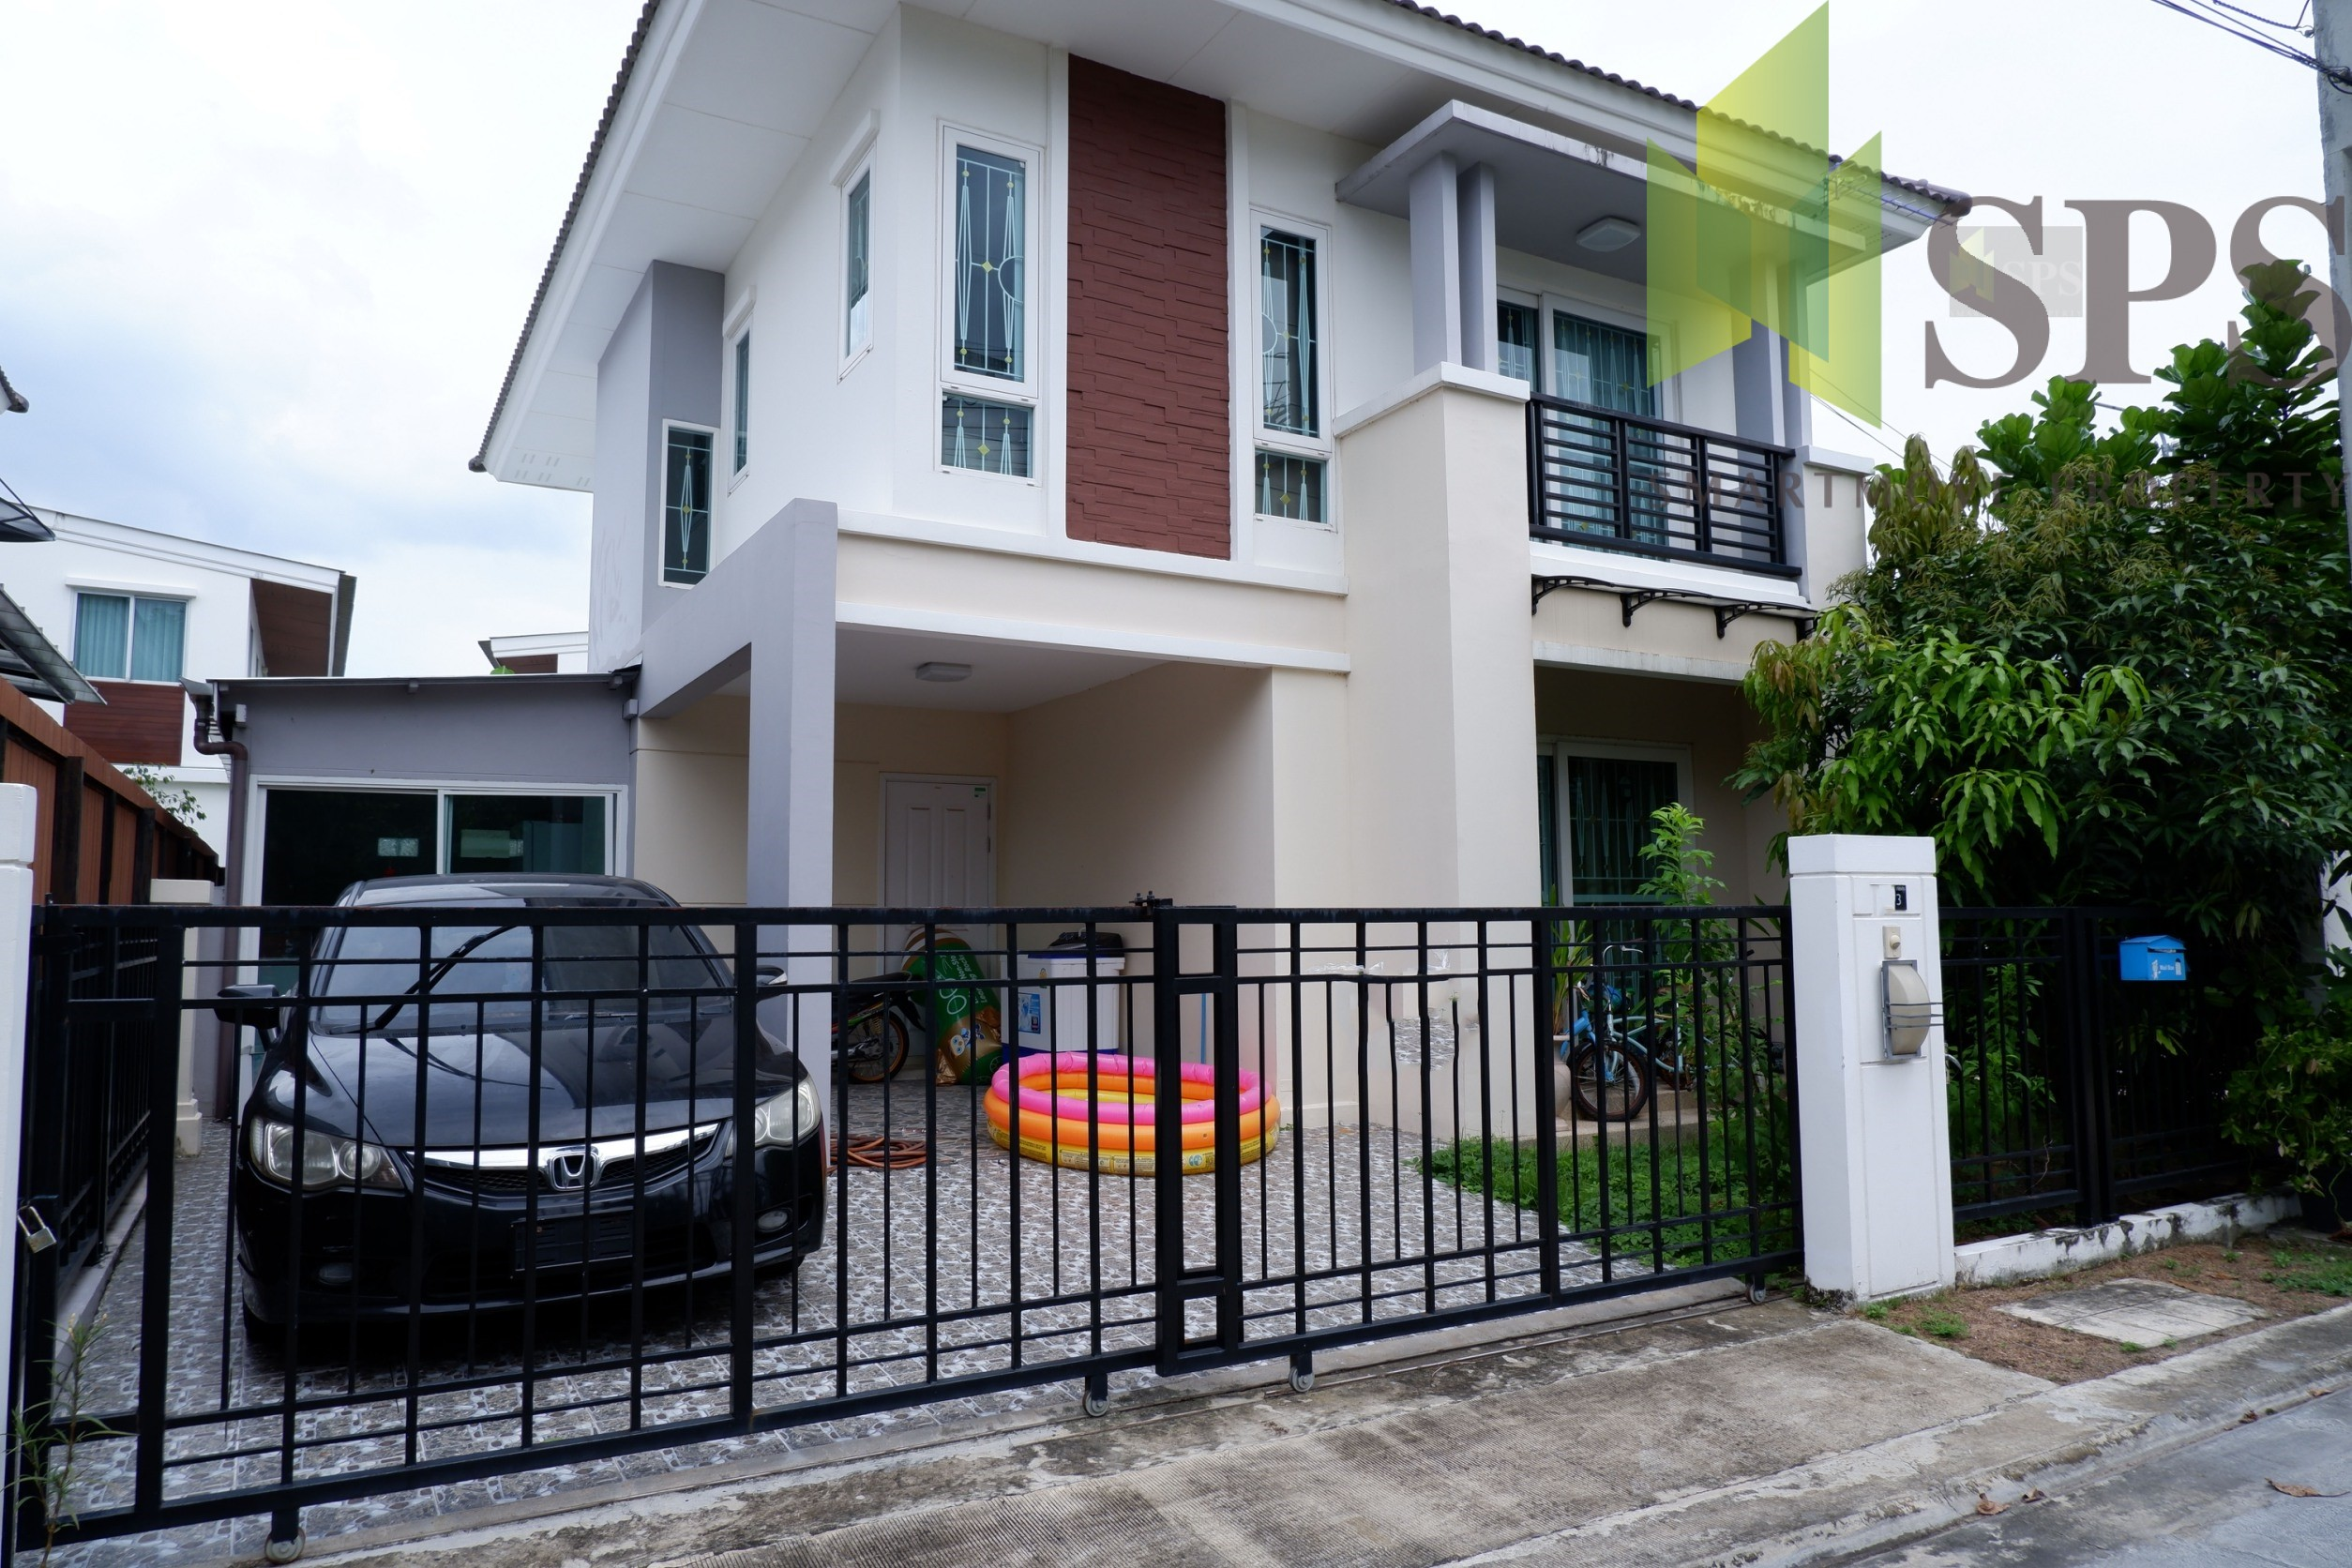 For Sale Single house 3 beds Next Loft Buanakarin Rd (SPS-GH187)